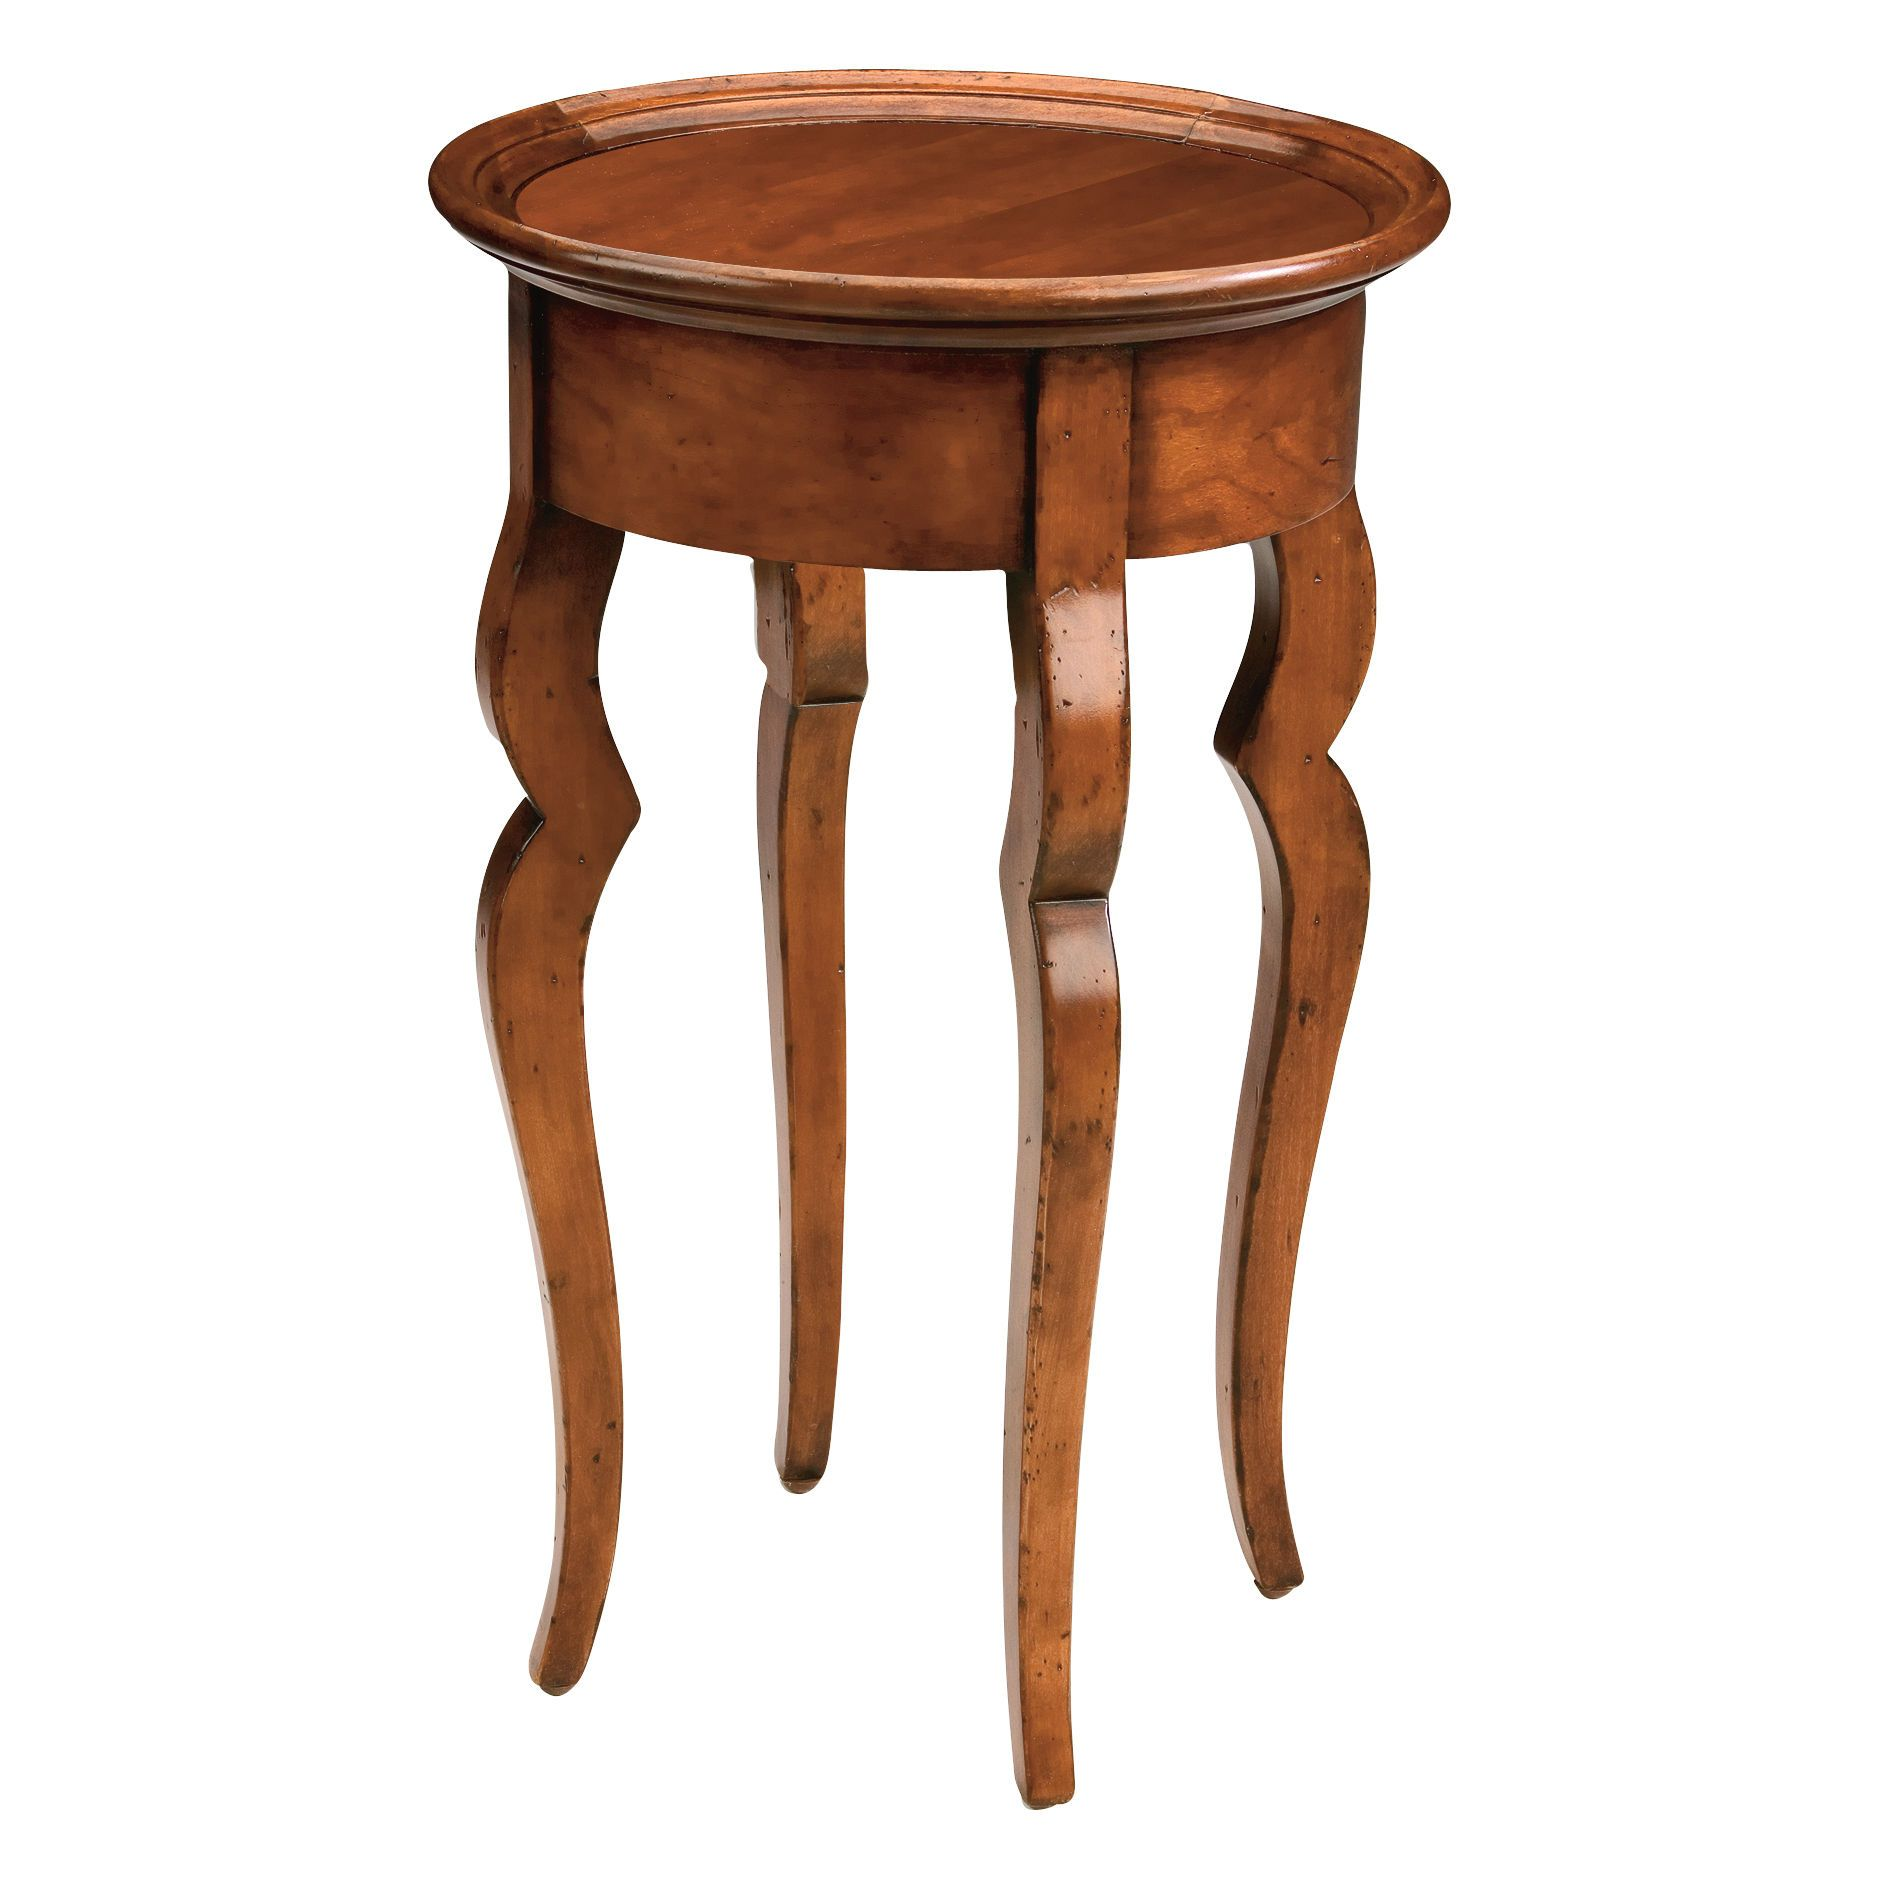 elisha round accent table ethan allen option for chair cherry end tables window glass side coffee stanley french provincial furniture wood sofa laura ashley bedside bronze lamps